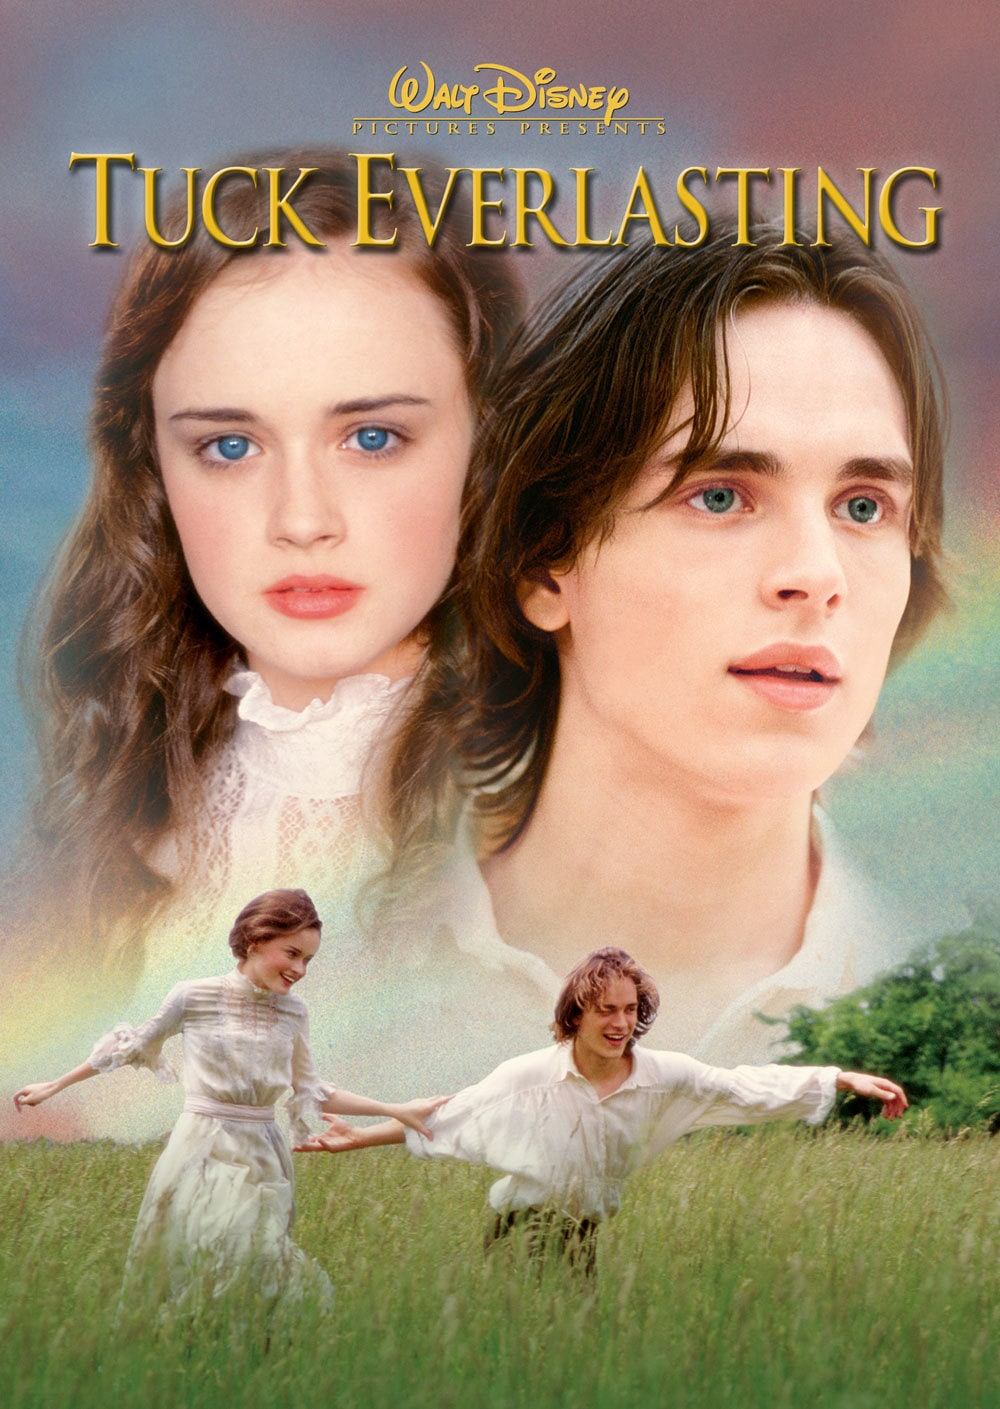 Image result for tuck everlasting